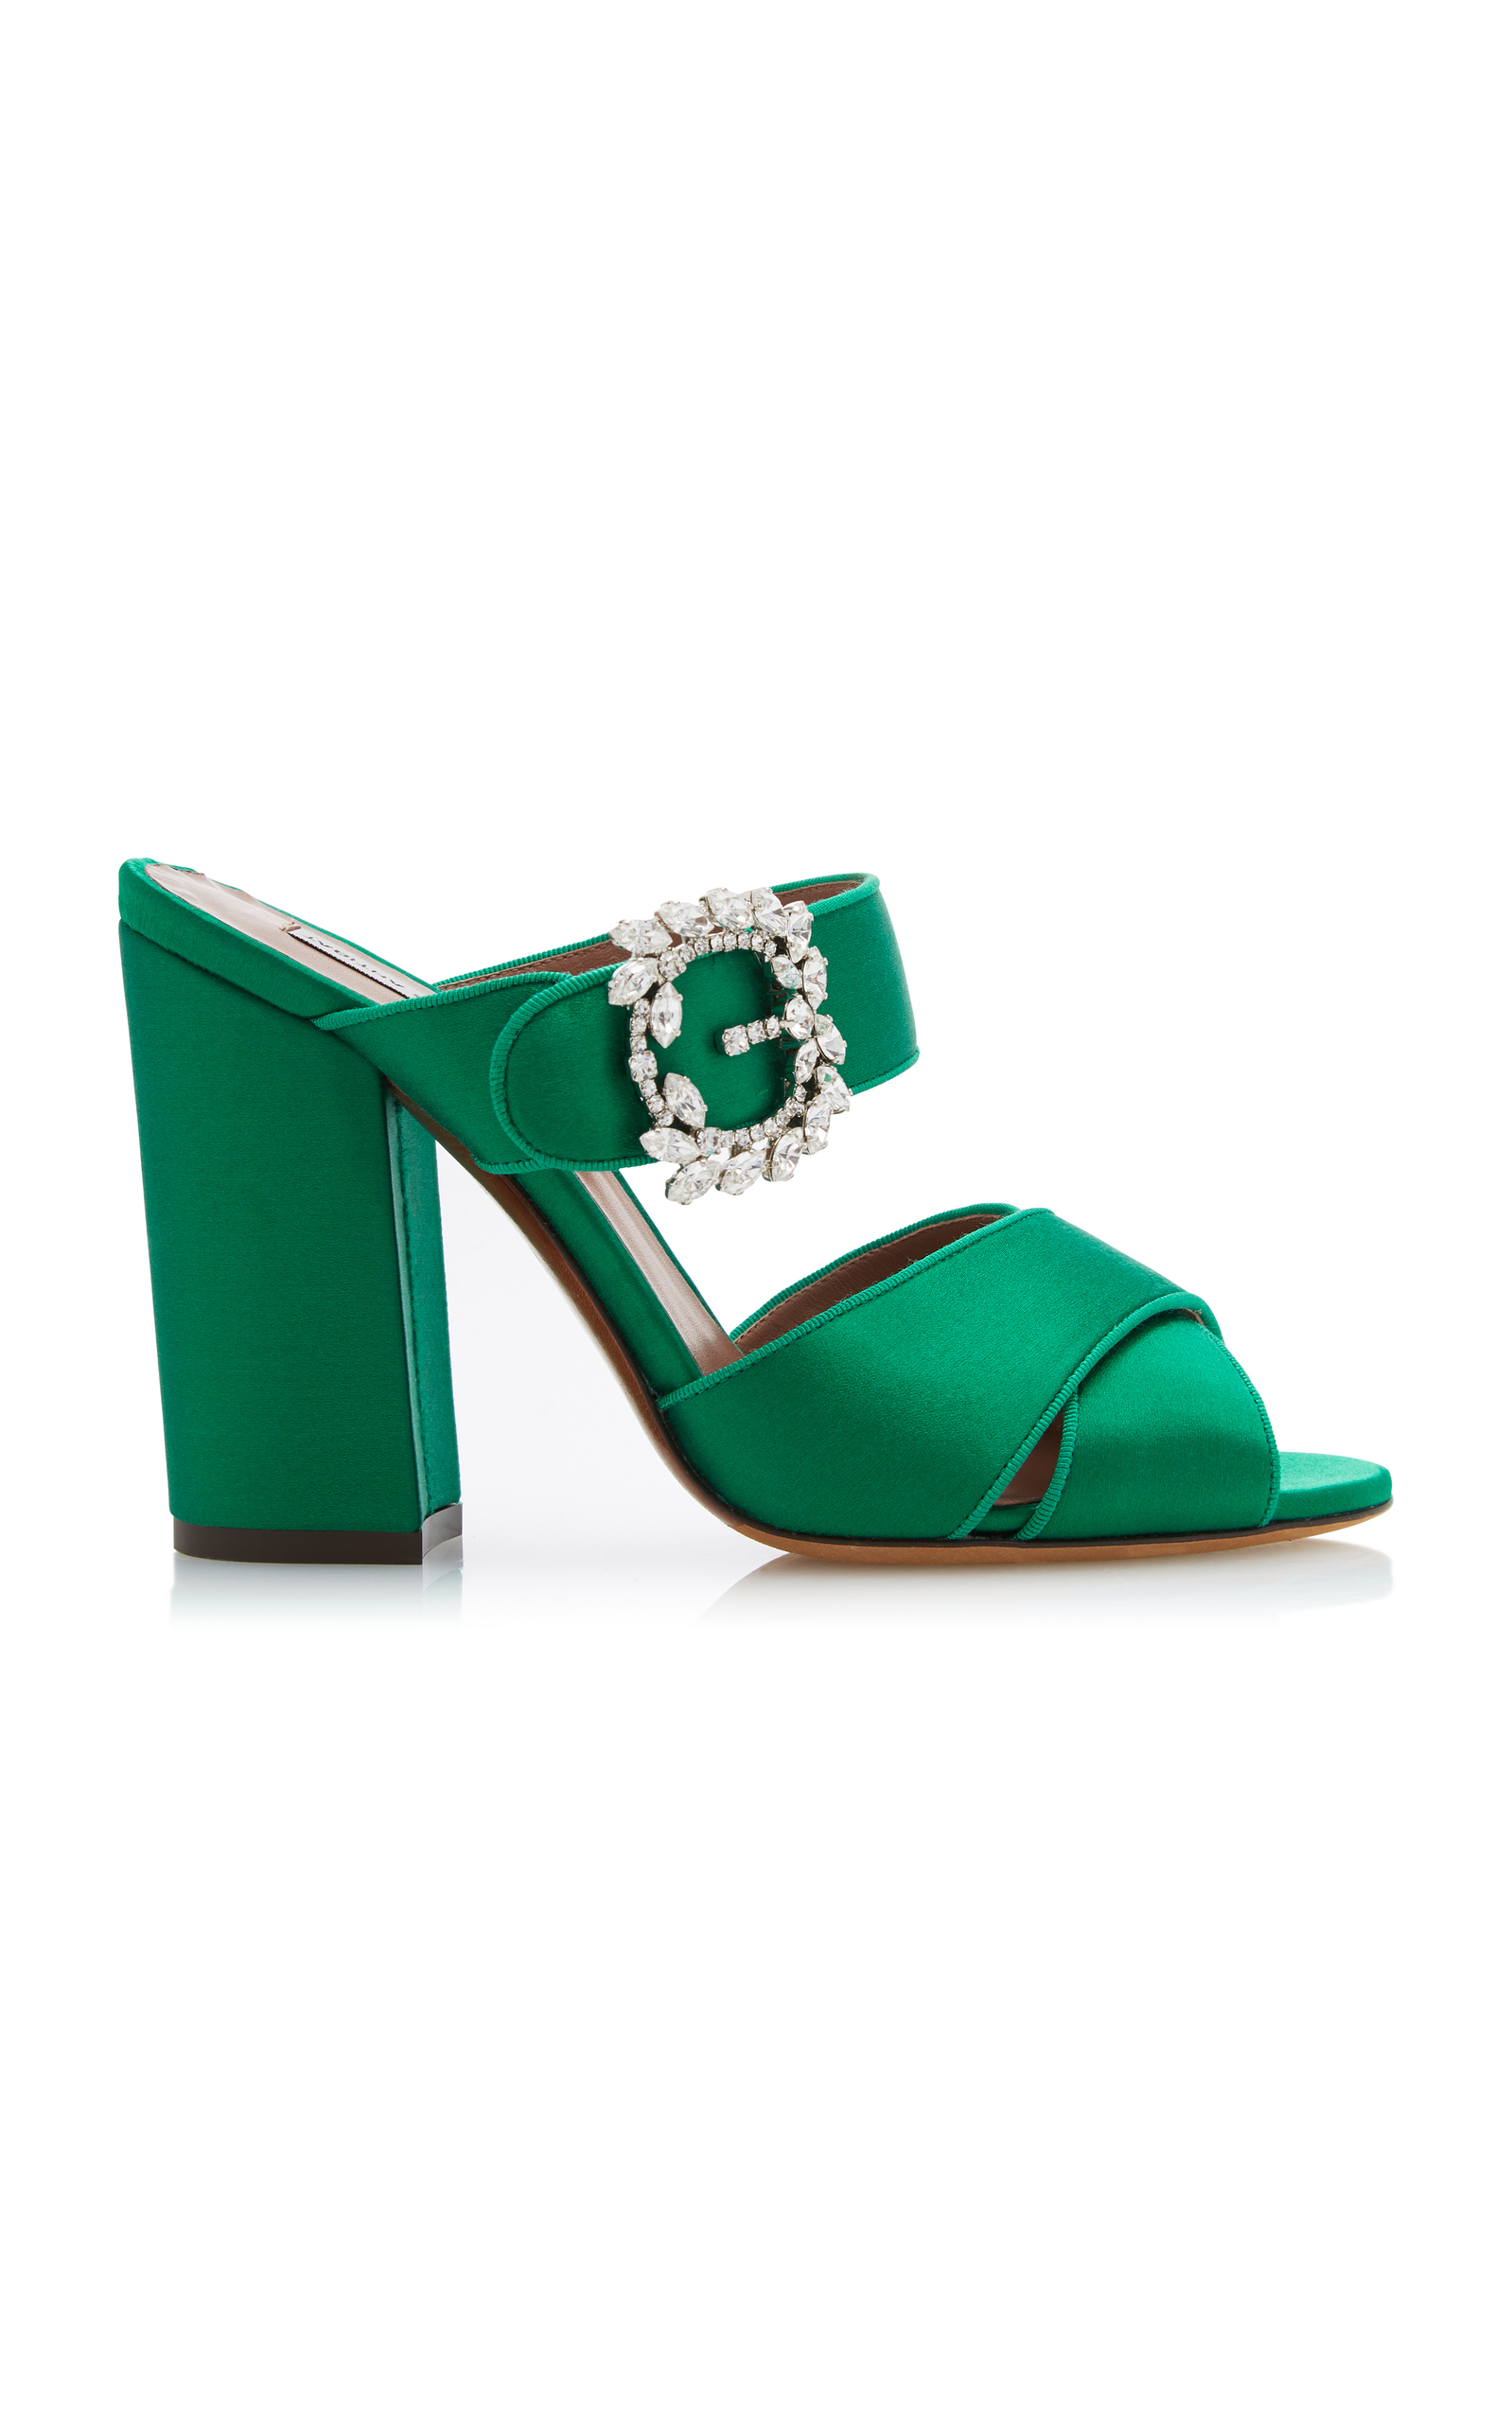 Tabitha Simmons Reyner Embellished Satin Block-Heel Sandals